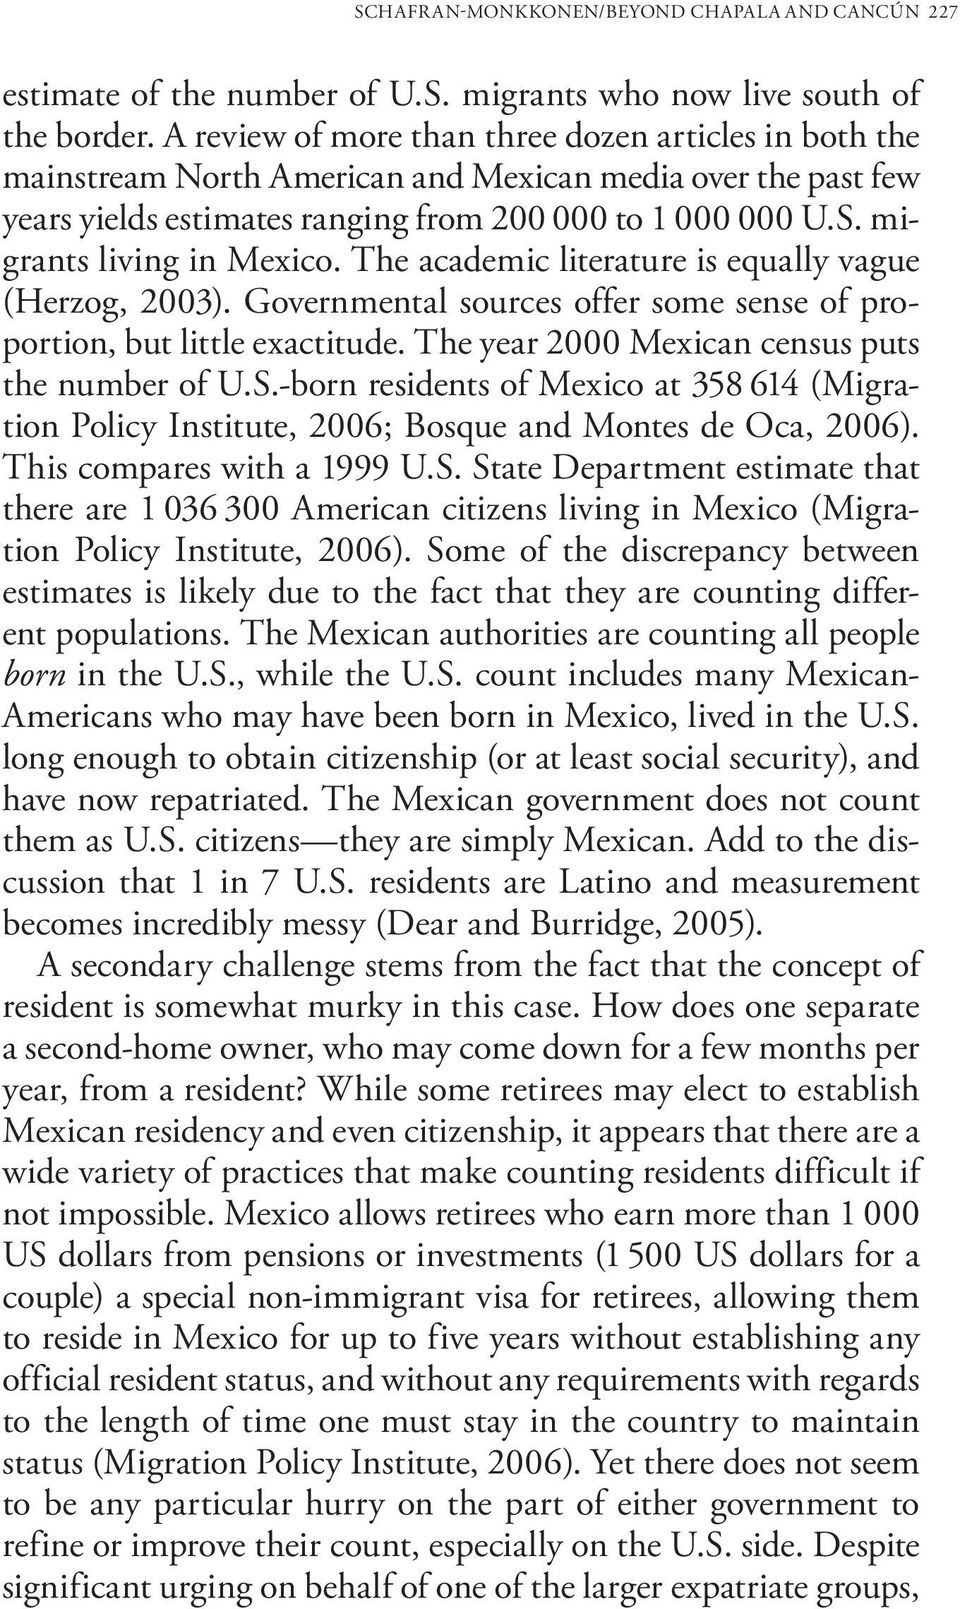 migrants living in Mexico. The academic literature is equally vague (Herzog, 2003). Governmental sources offer some sense of proportion, but little exactitude.